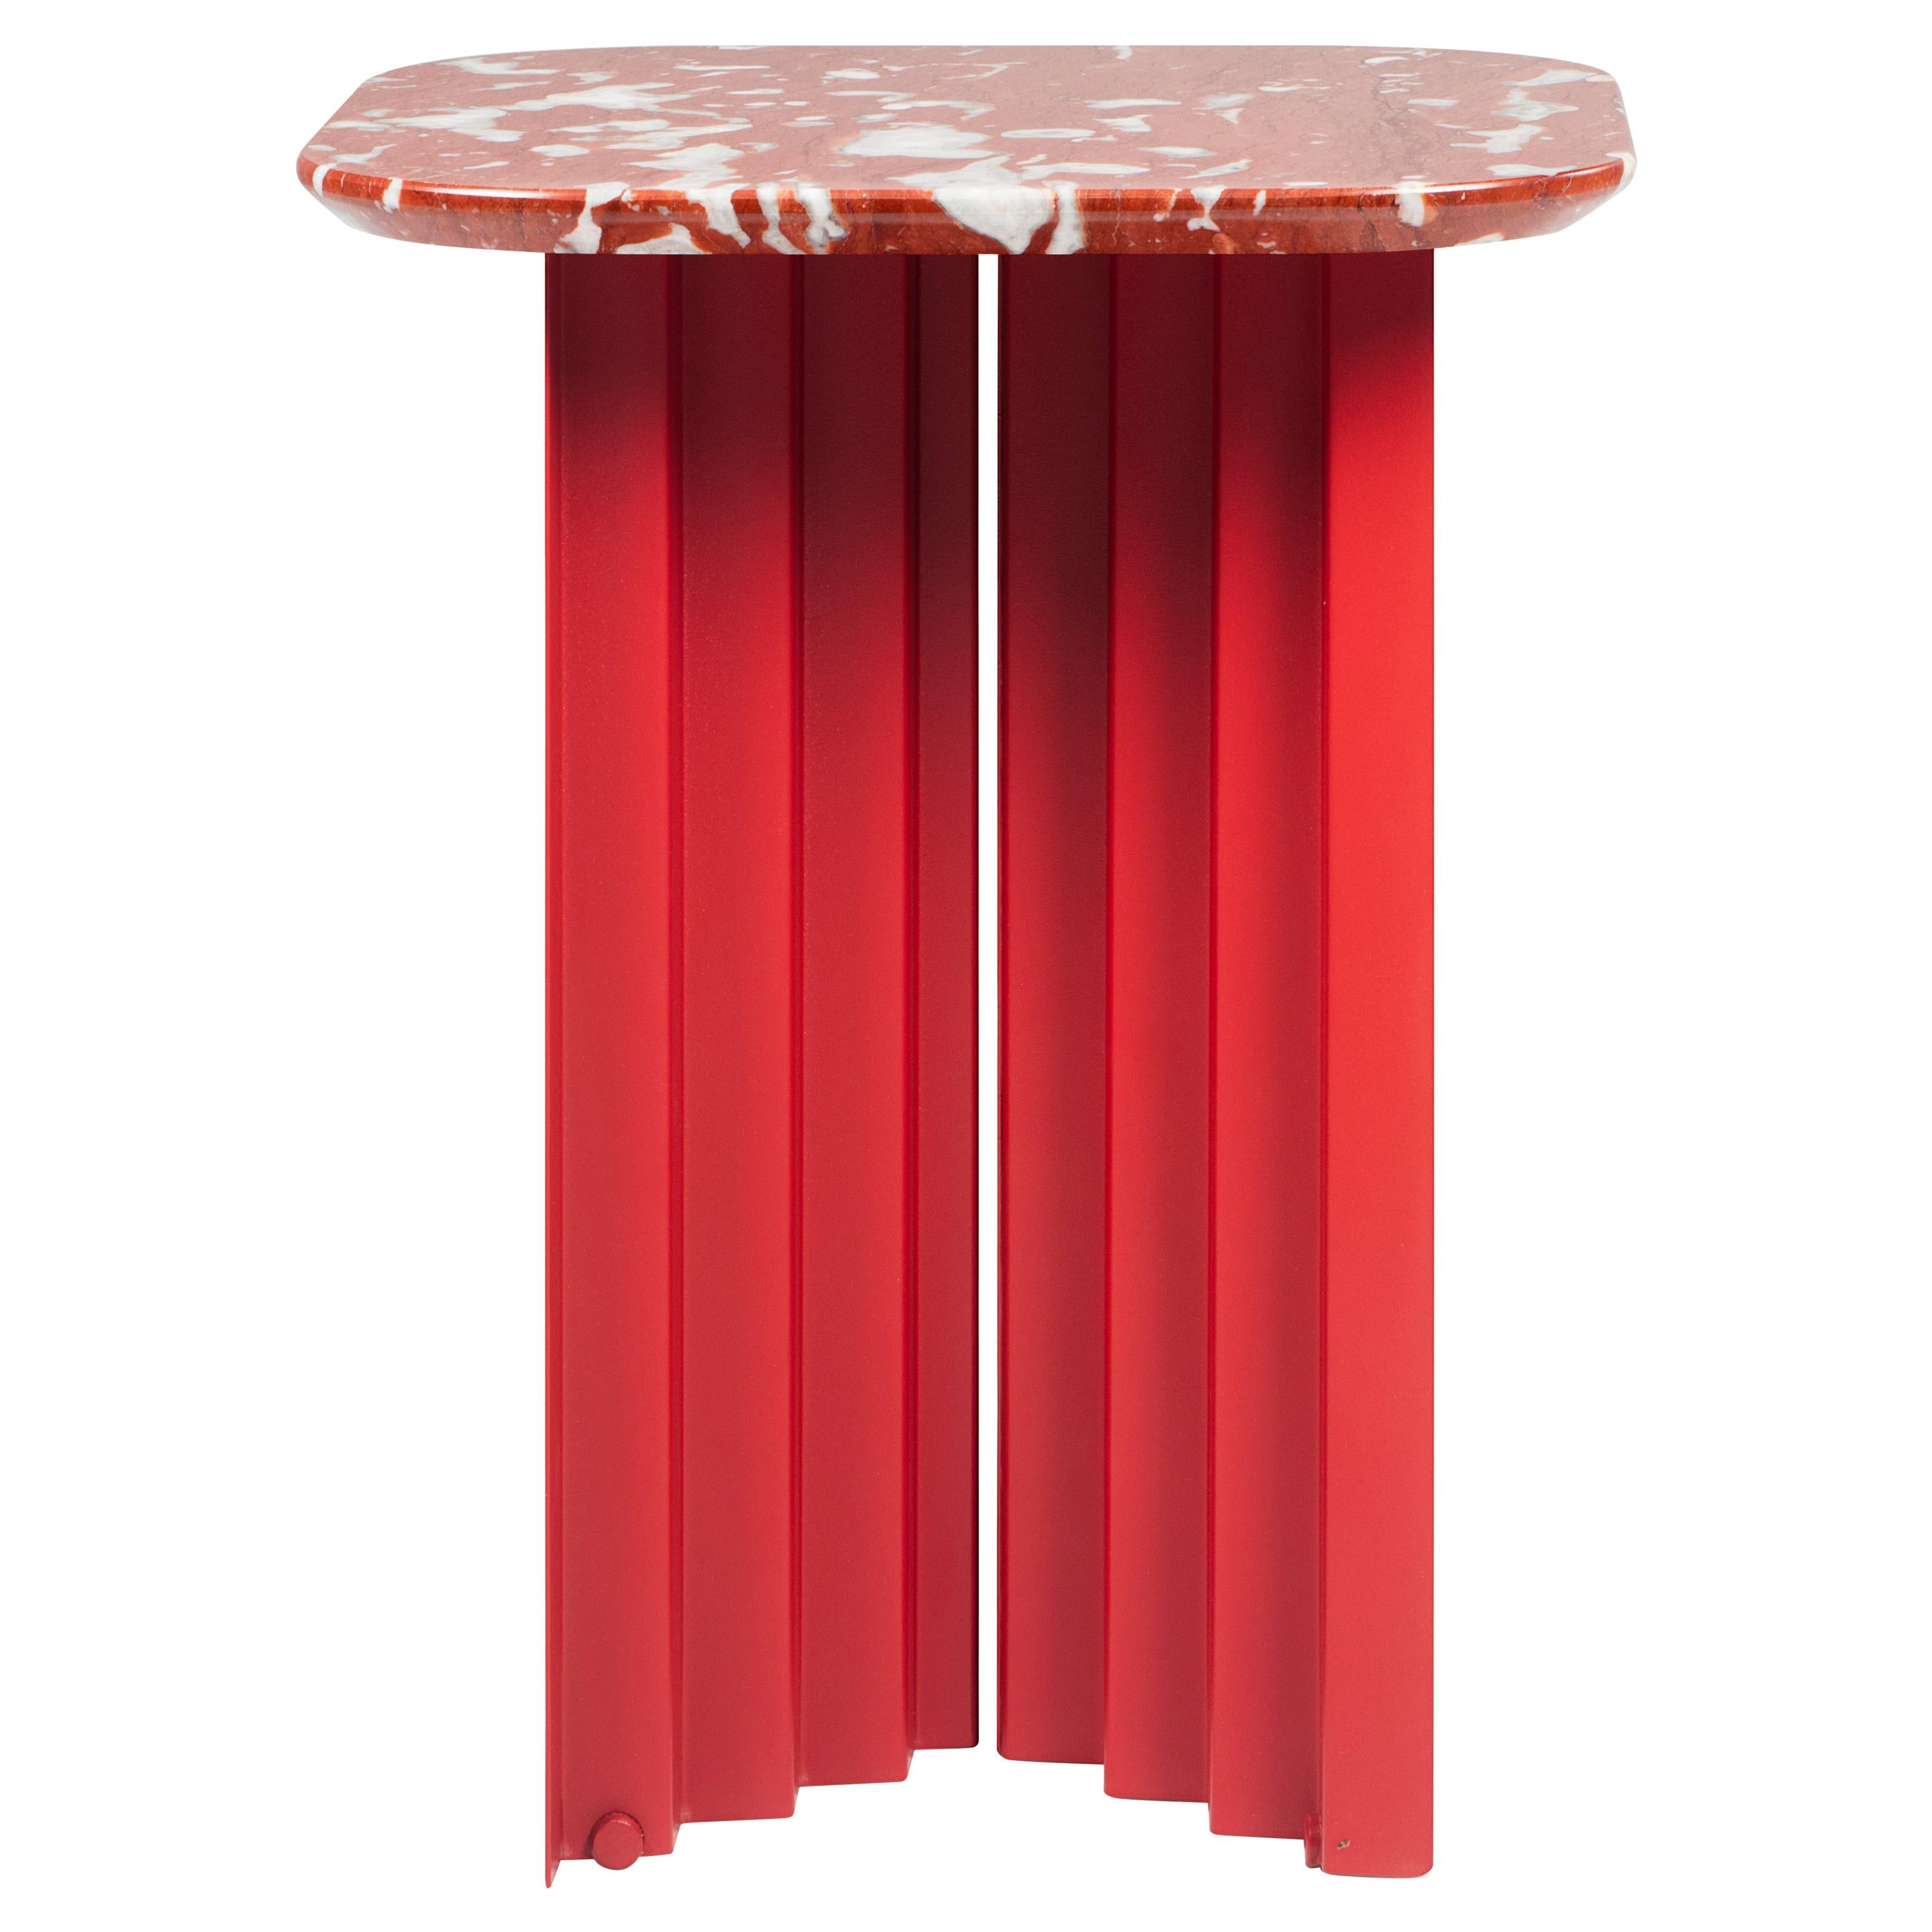 RS Barcelona Plec Small Table in Red Marble by A.P.O.